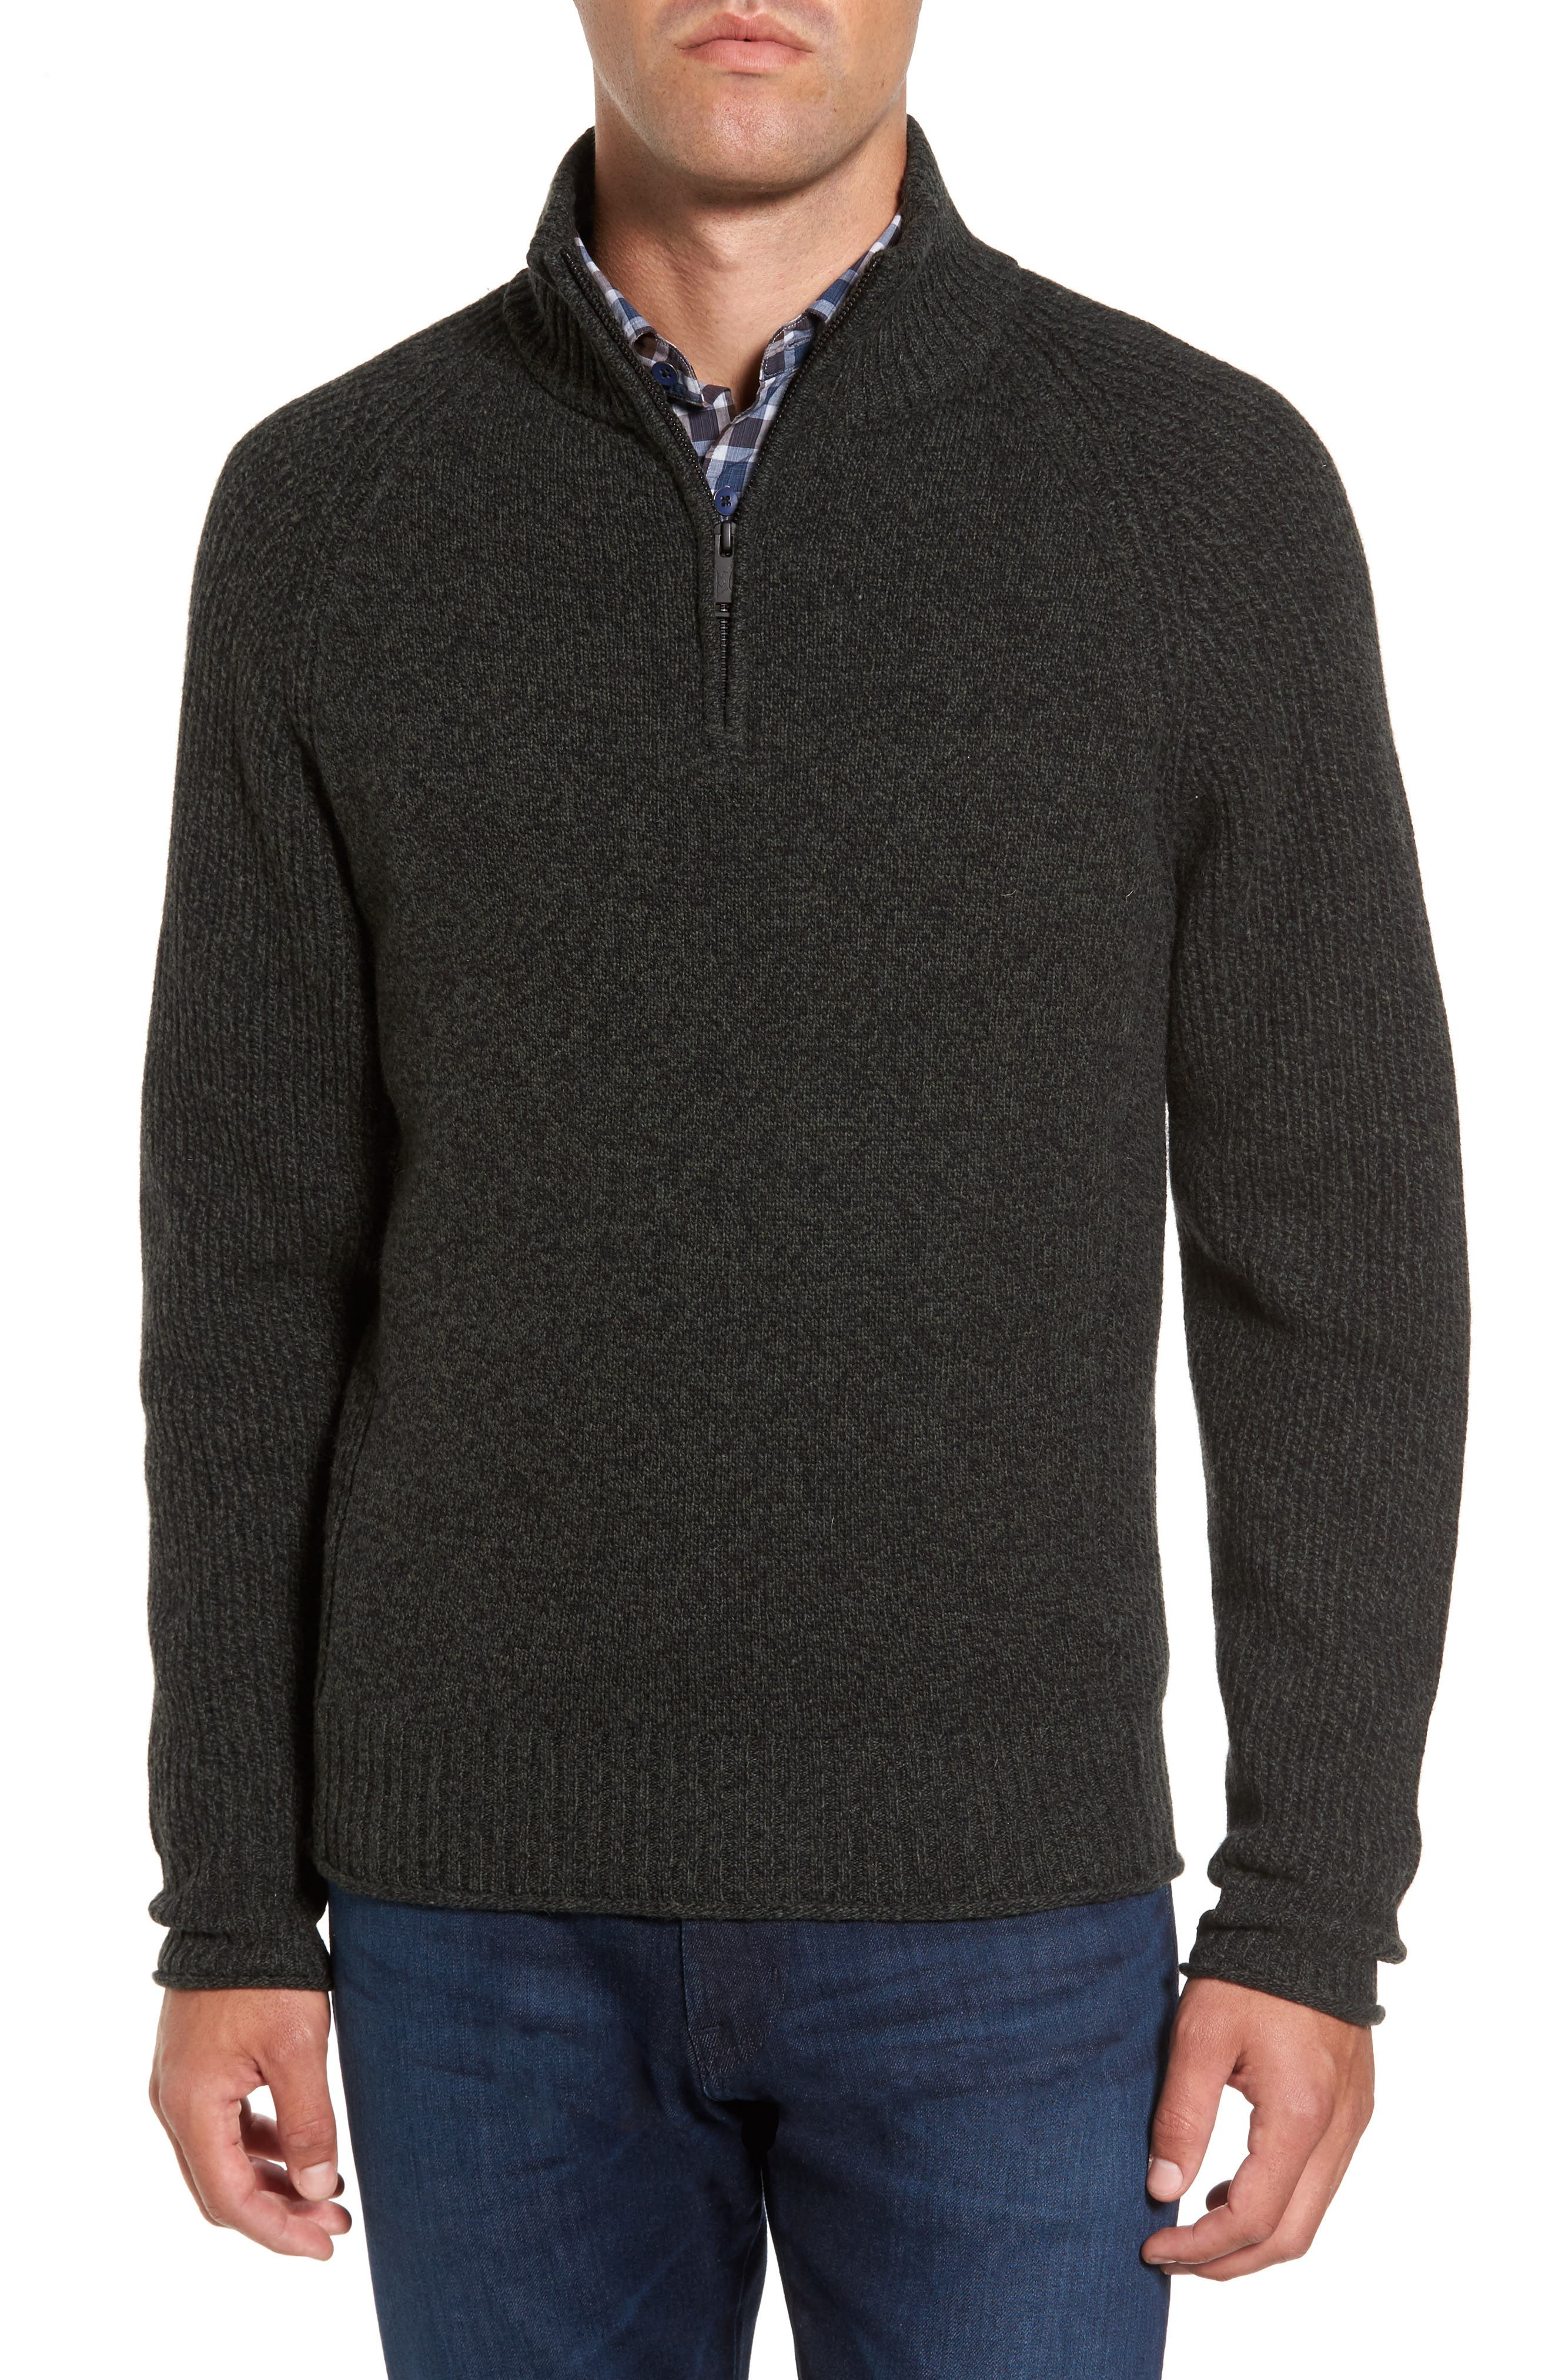 Stredwick Lambswool Sweater,                             Main thumbnail 1, color,                             Forest